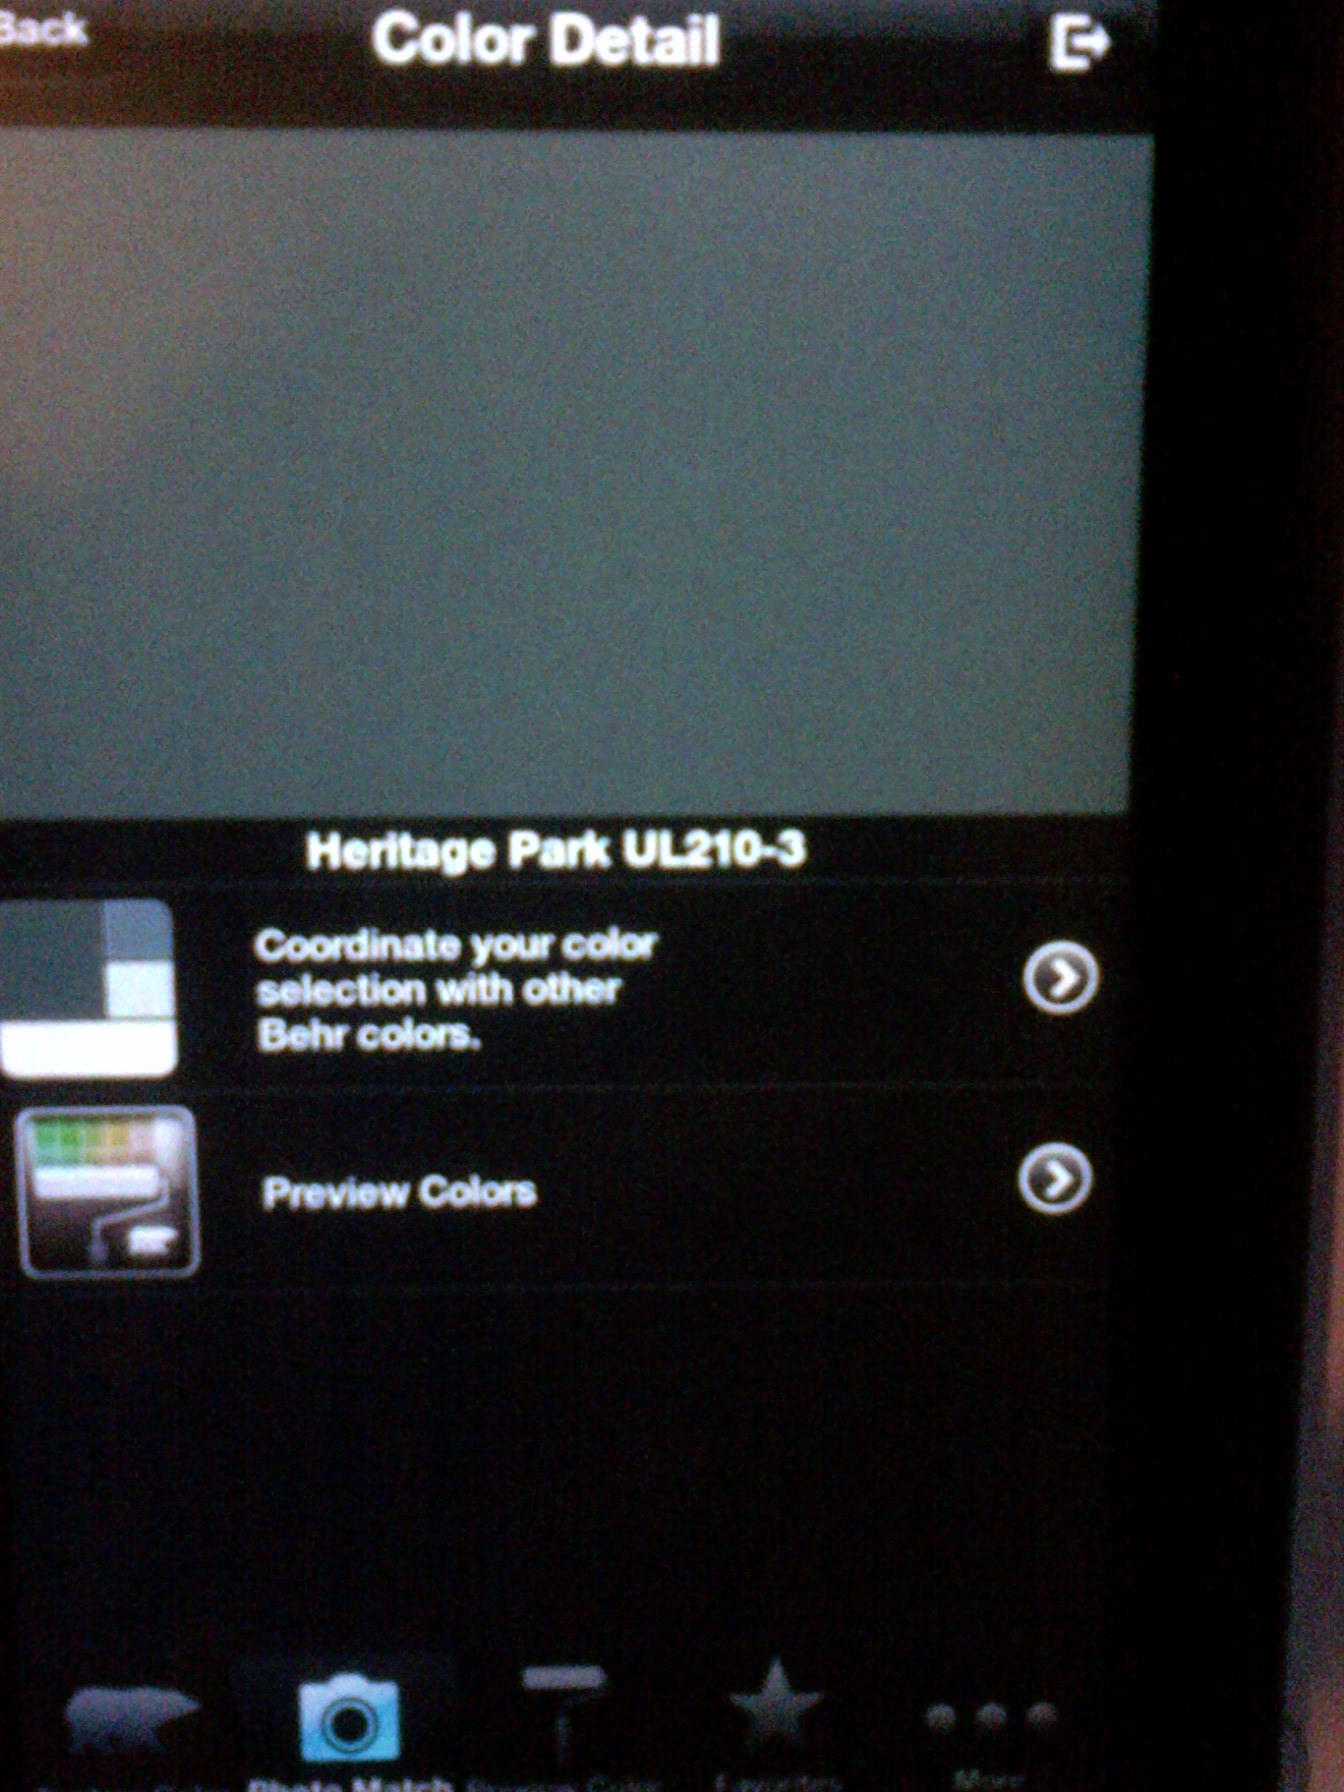 Behr Paint App Latest Project Color The Home Depot Screenshot With